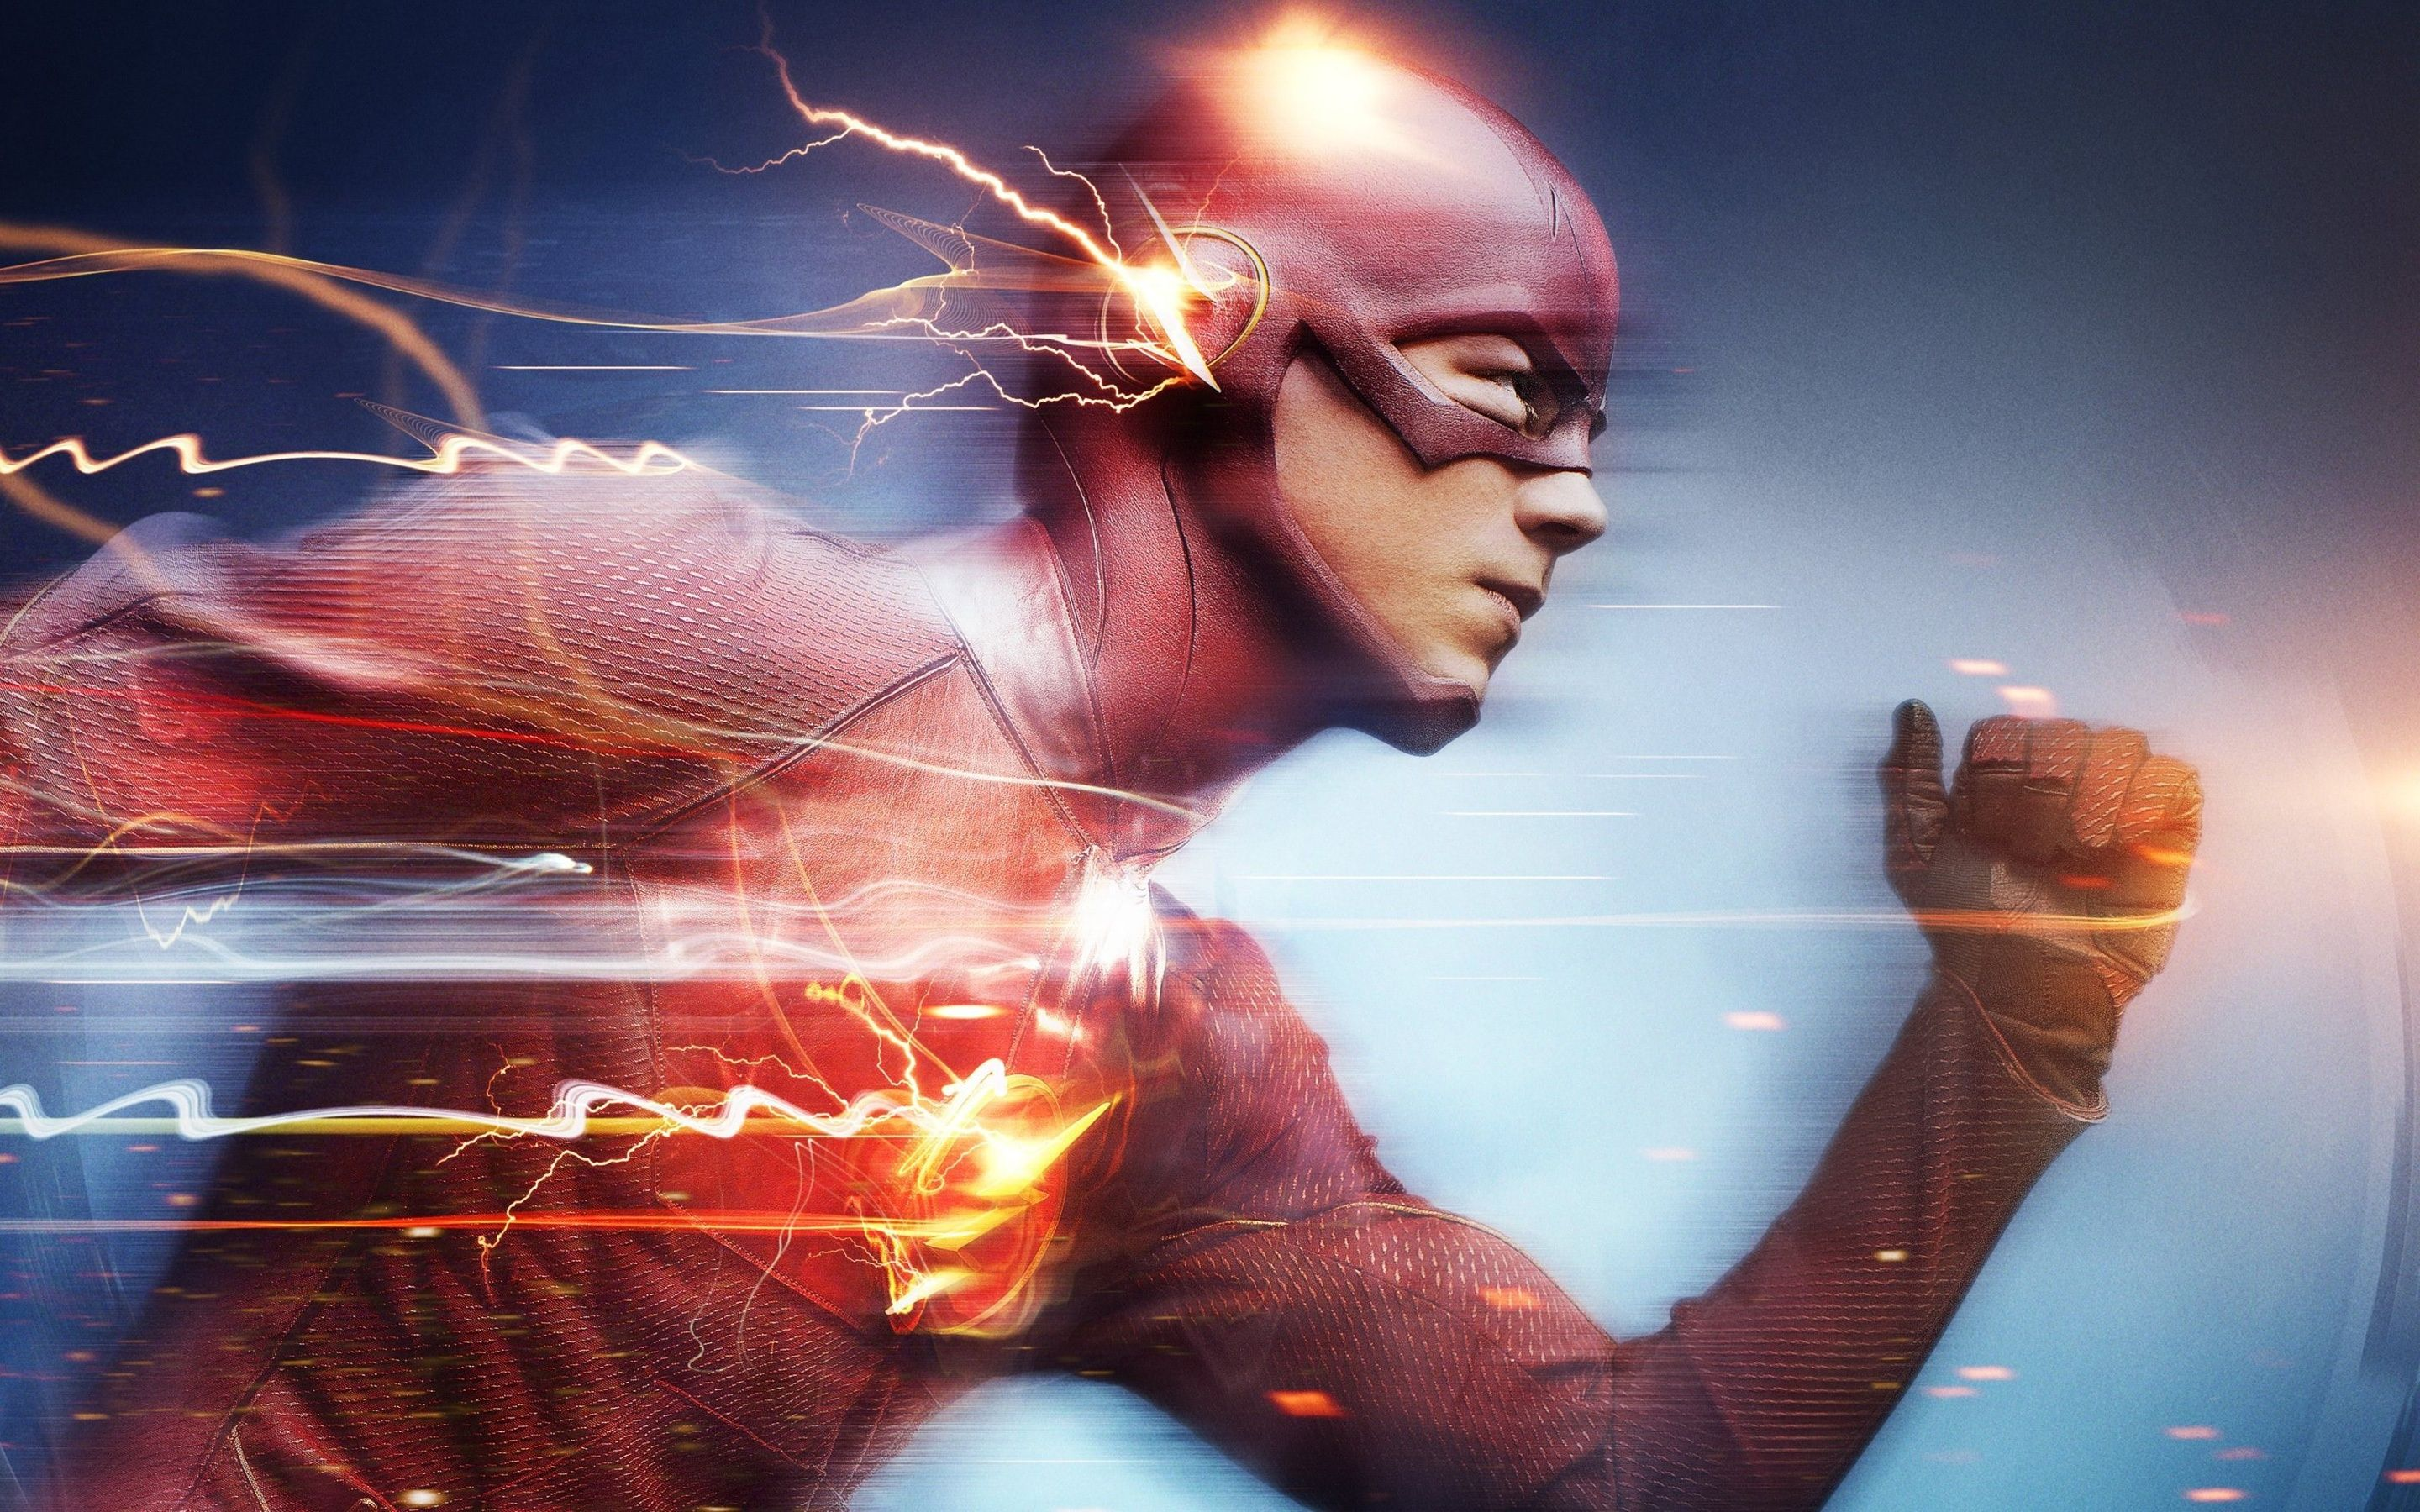 2880x1800 Barry Allen The Flash Wallpaper Background Image View Download Comment And Rate Wallpaper Abyss The Flash Flash Wallpaper Superhero Canvas Art